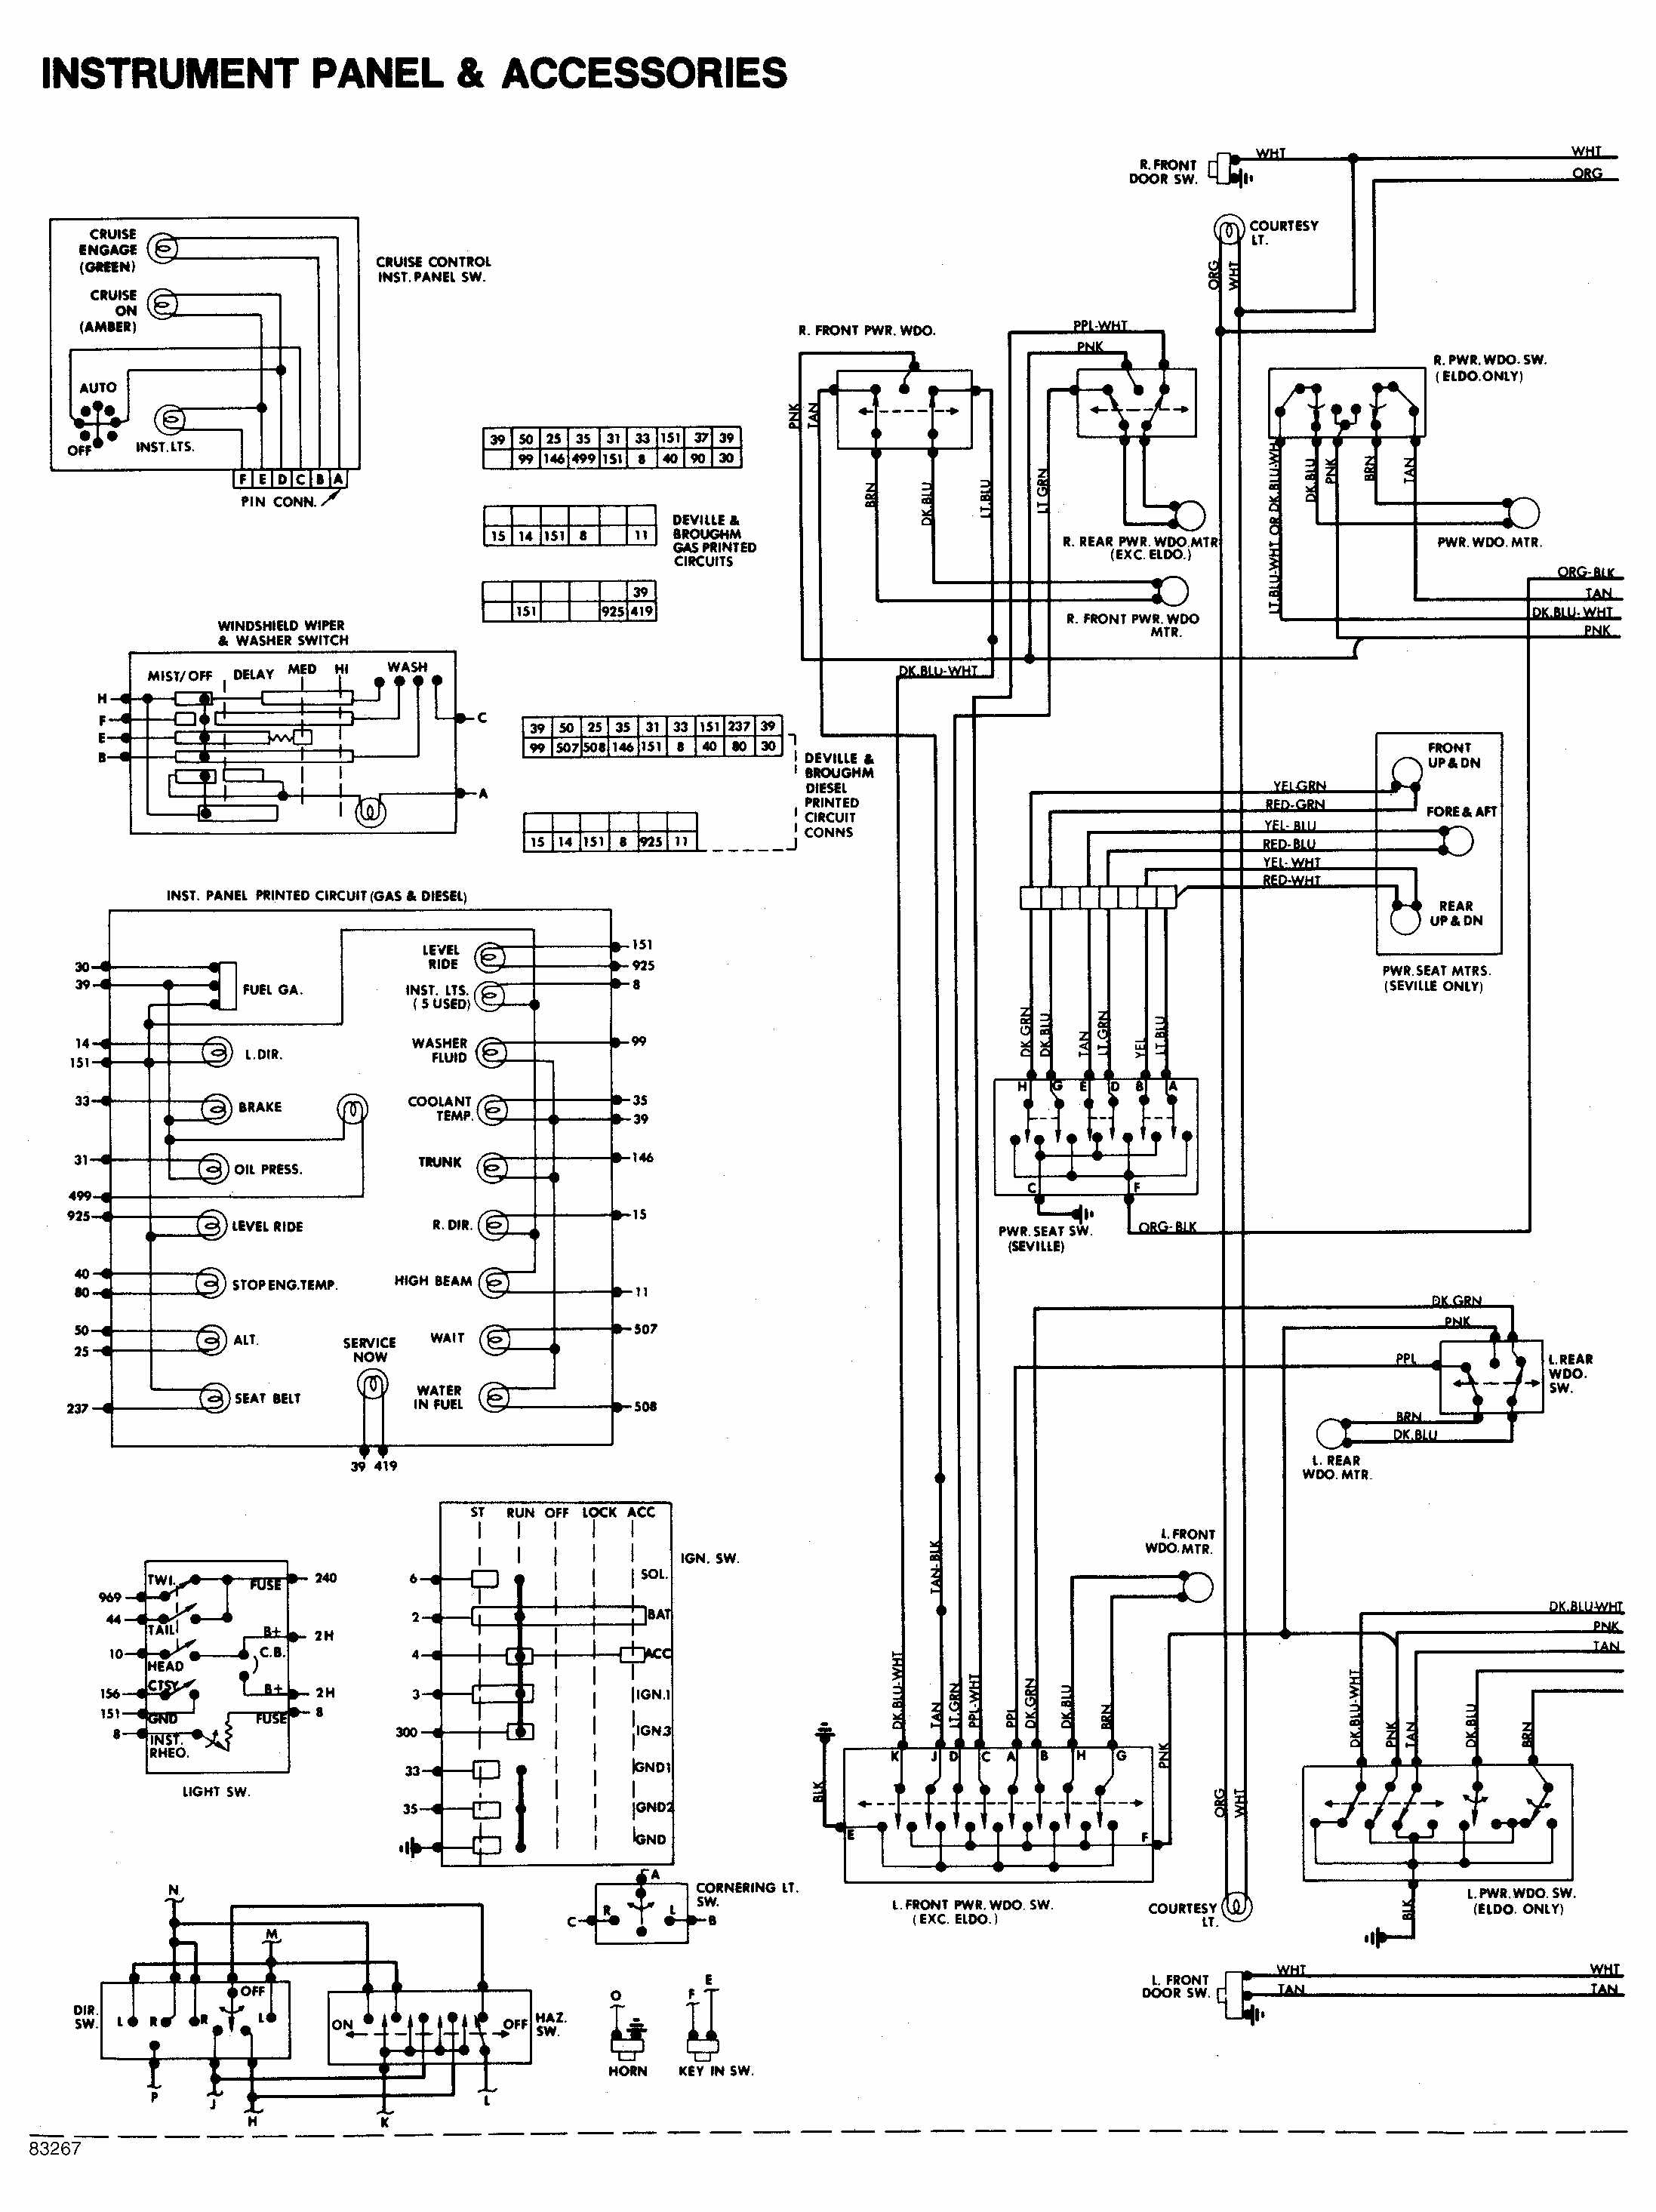 chevy diagrams switch light switch wiring diagram #7